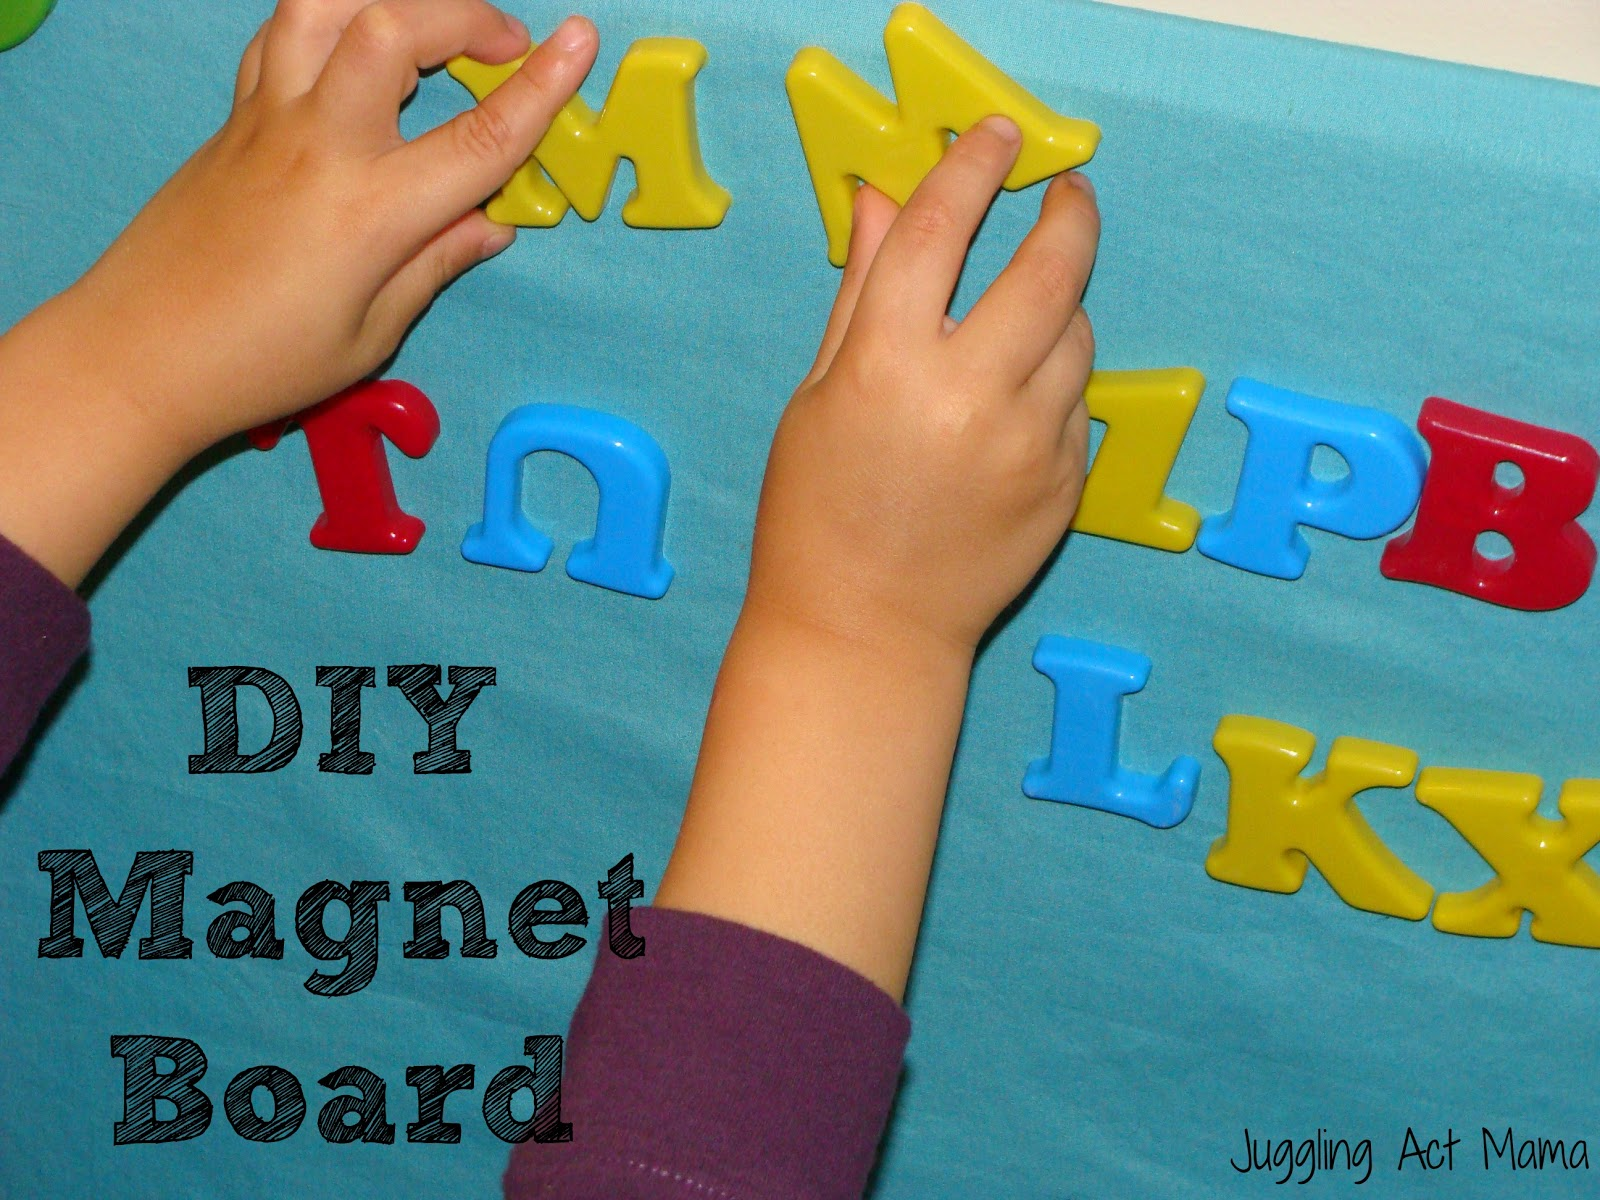 Adventures in Creating a Magnet Board - Juggling Act Mama